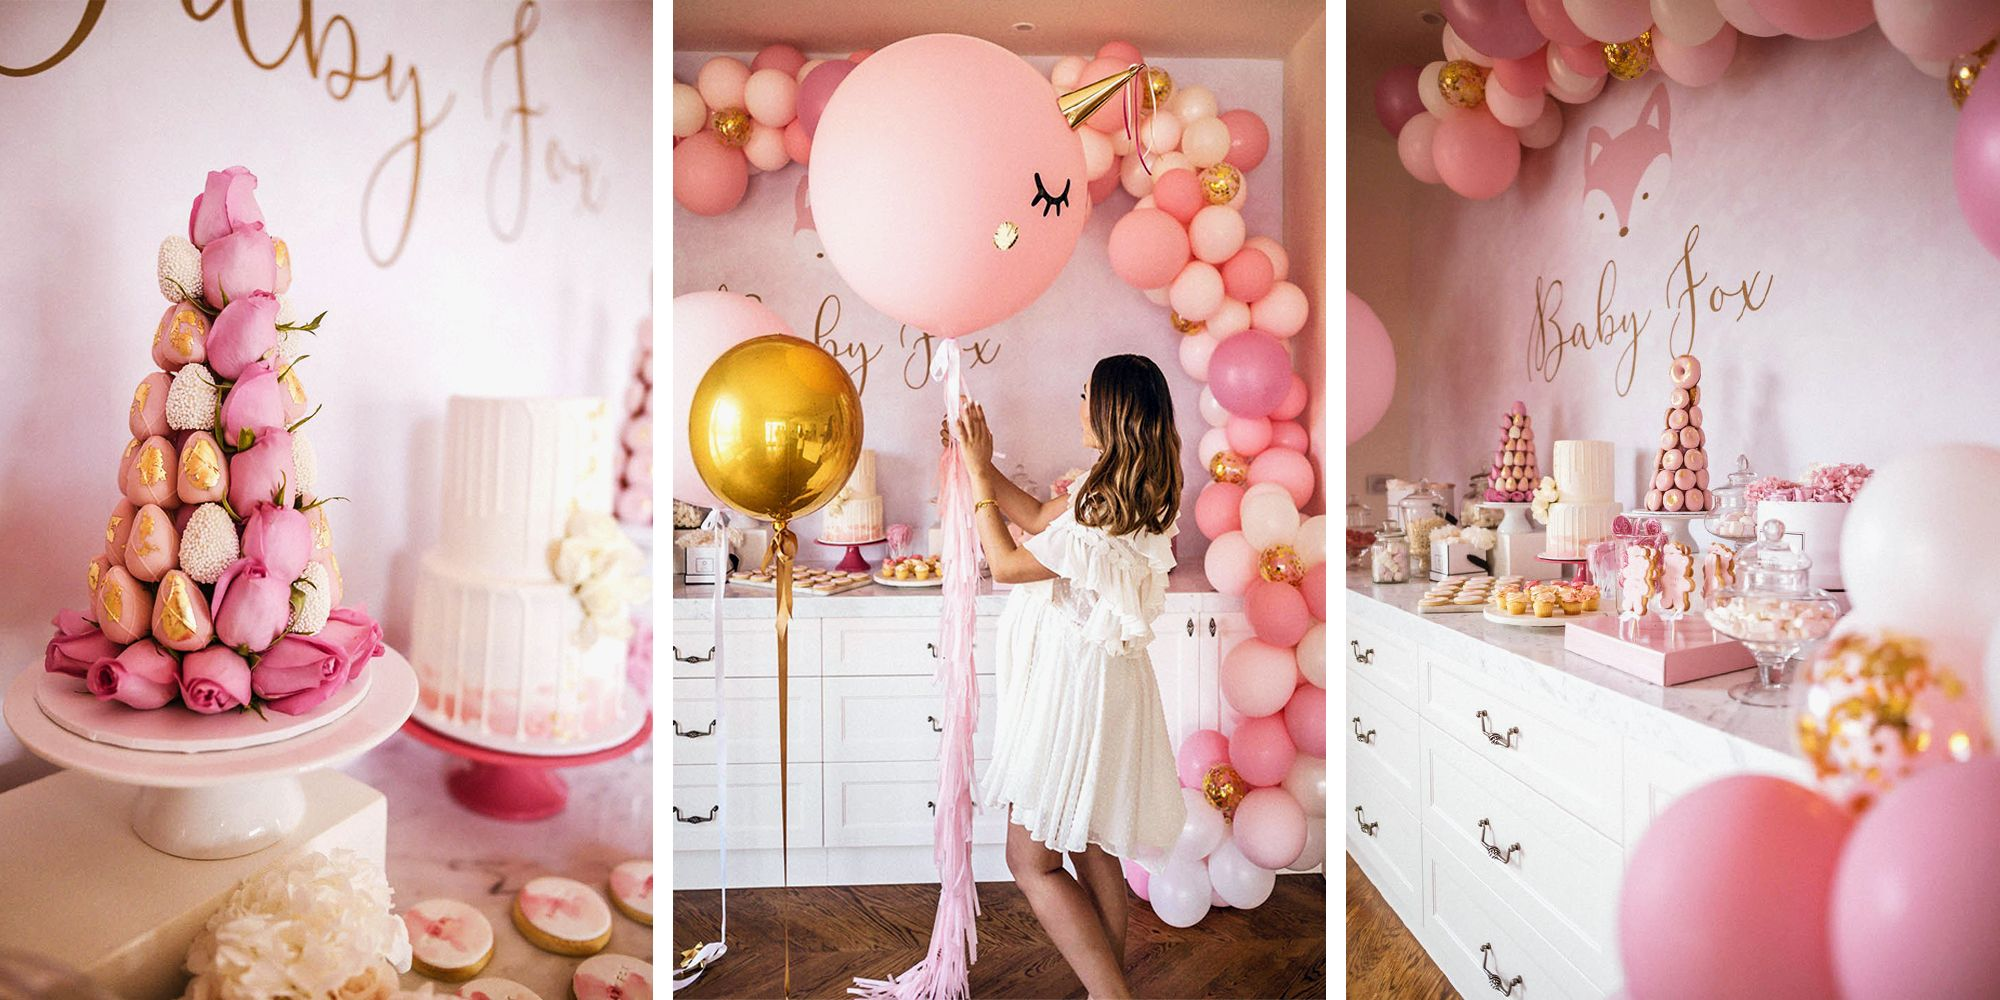 7 Best Baby Shower Ideas for 2018  Trendy Baby Shower Decorations  Themes